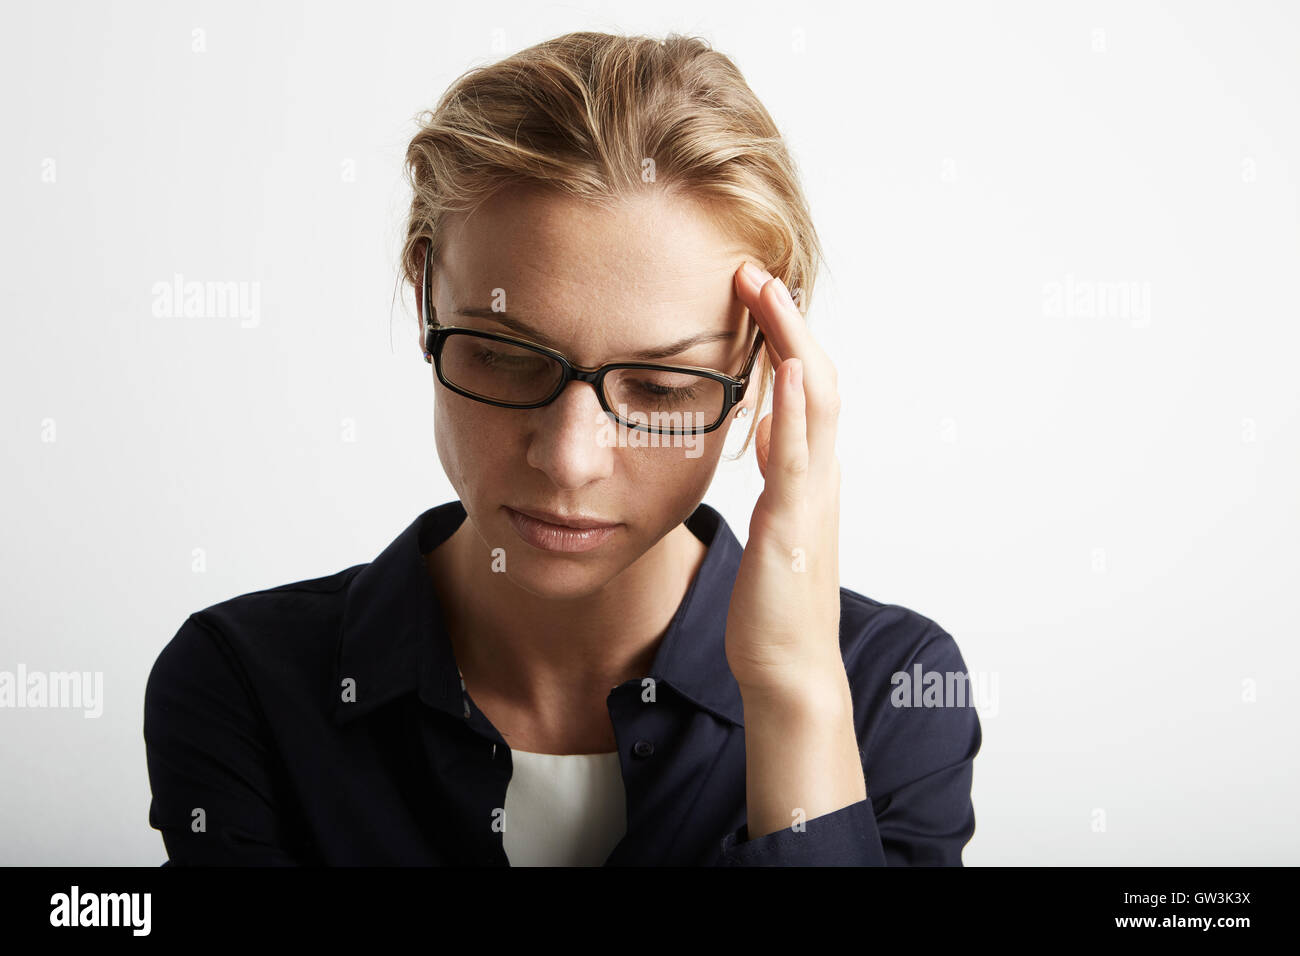 Portrait Handsome Pretty Young Woman Who Grabs Her Head Hands Headache.Empty White Background.Beauty,Crisis,Fashion - Stock Image